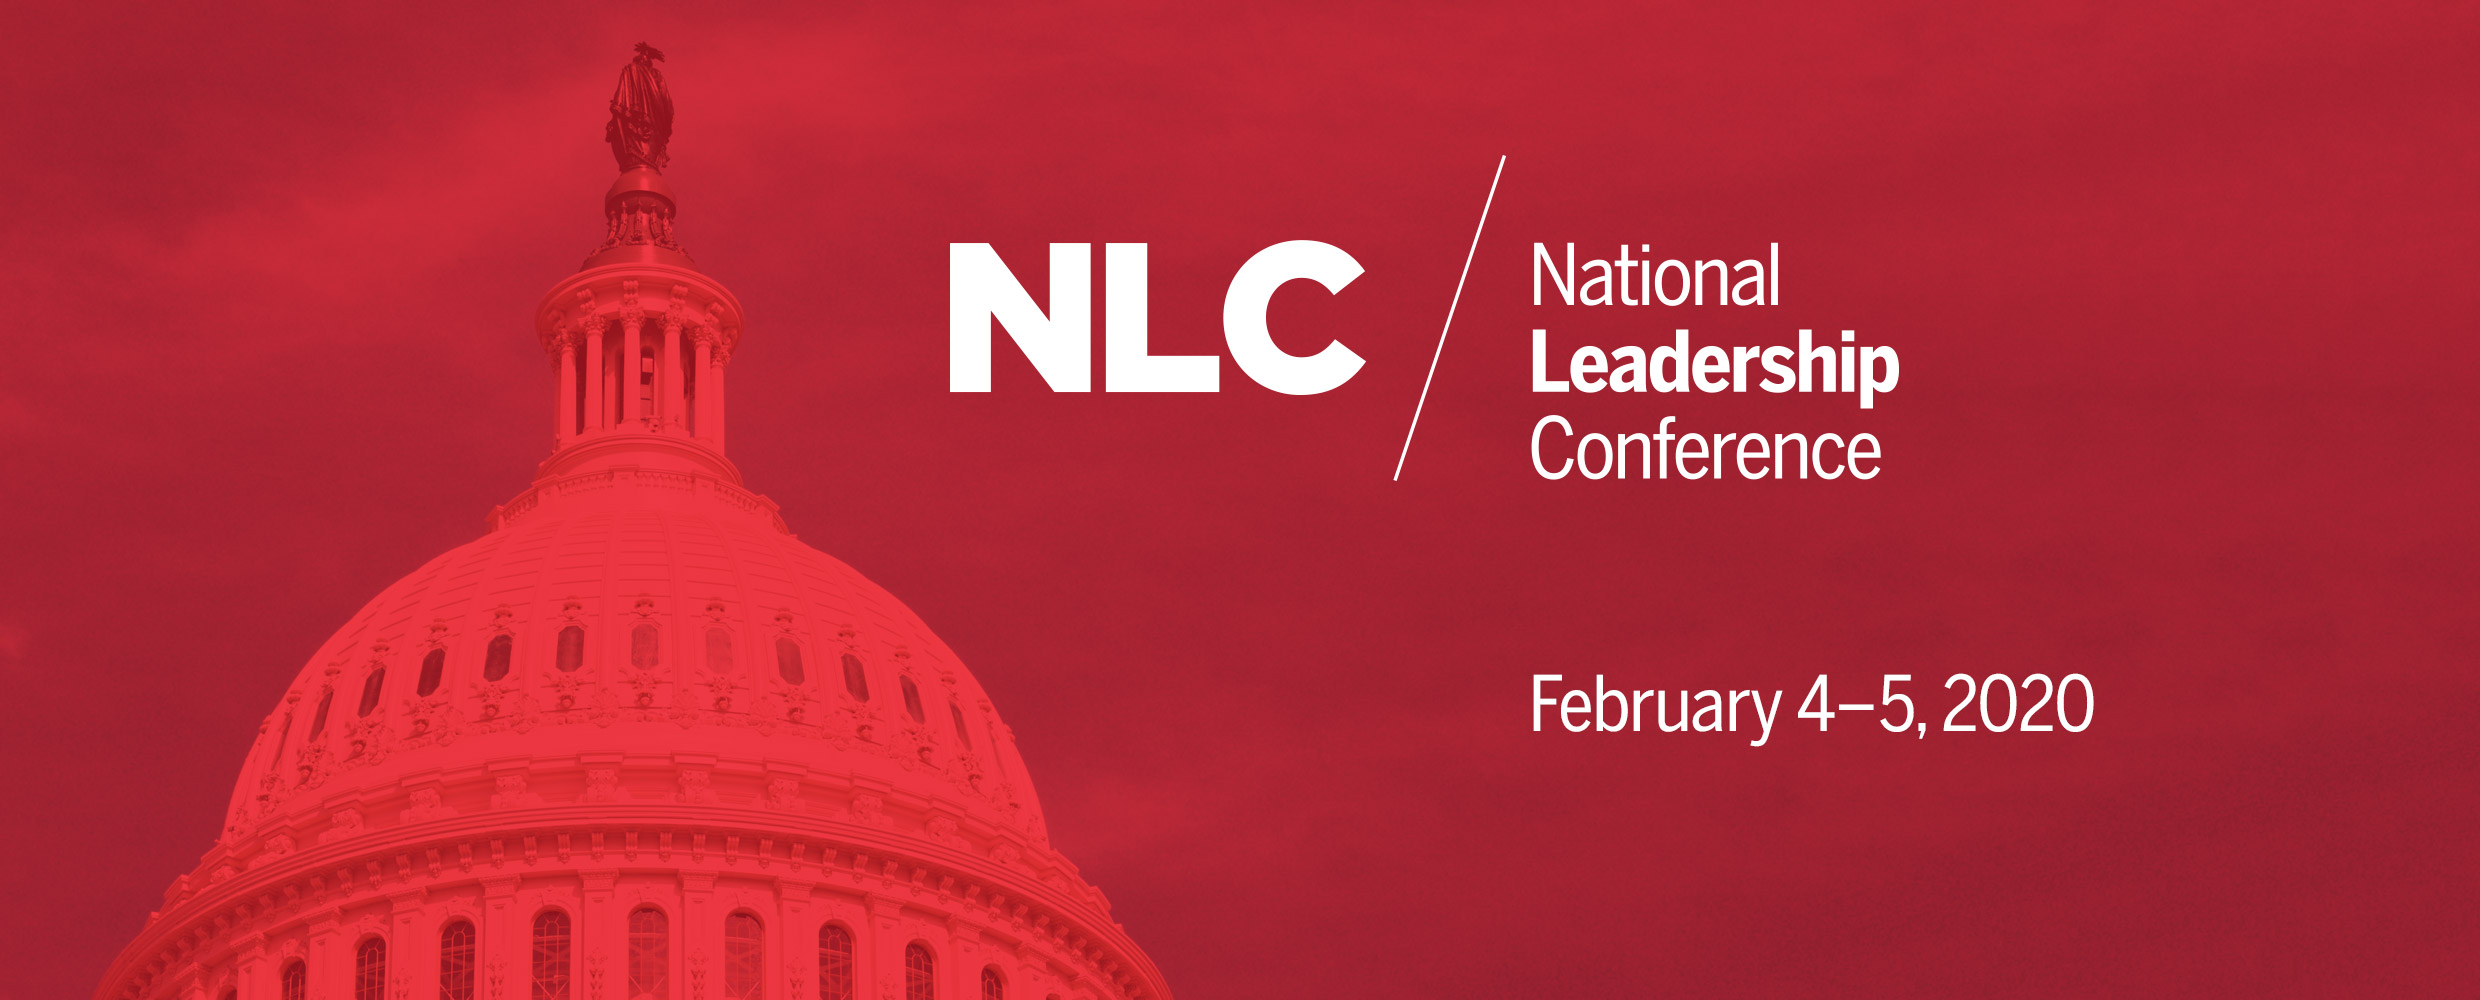 National Leadership Conference 2020